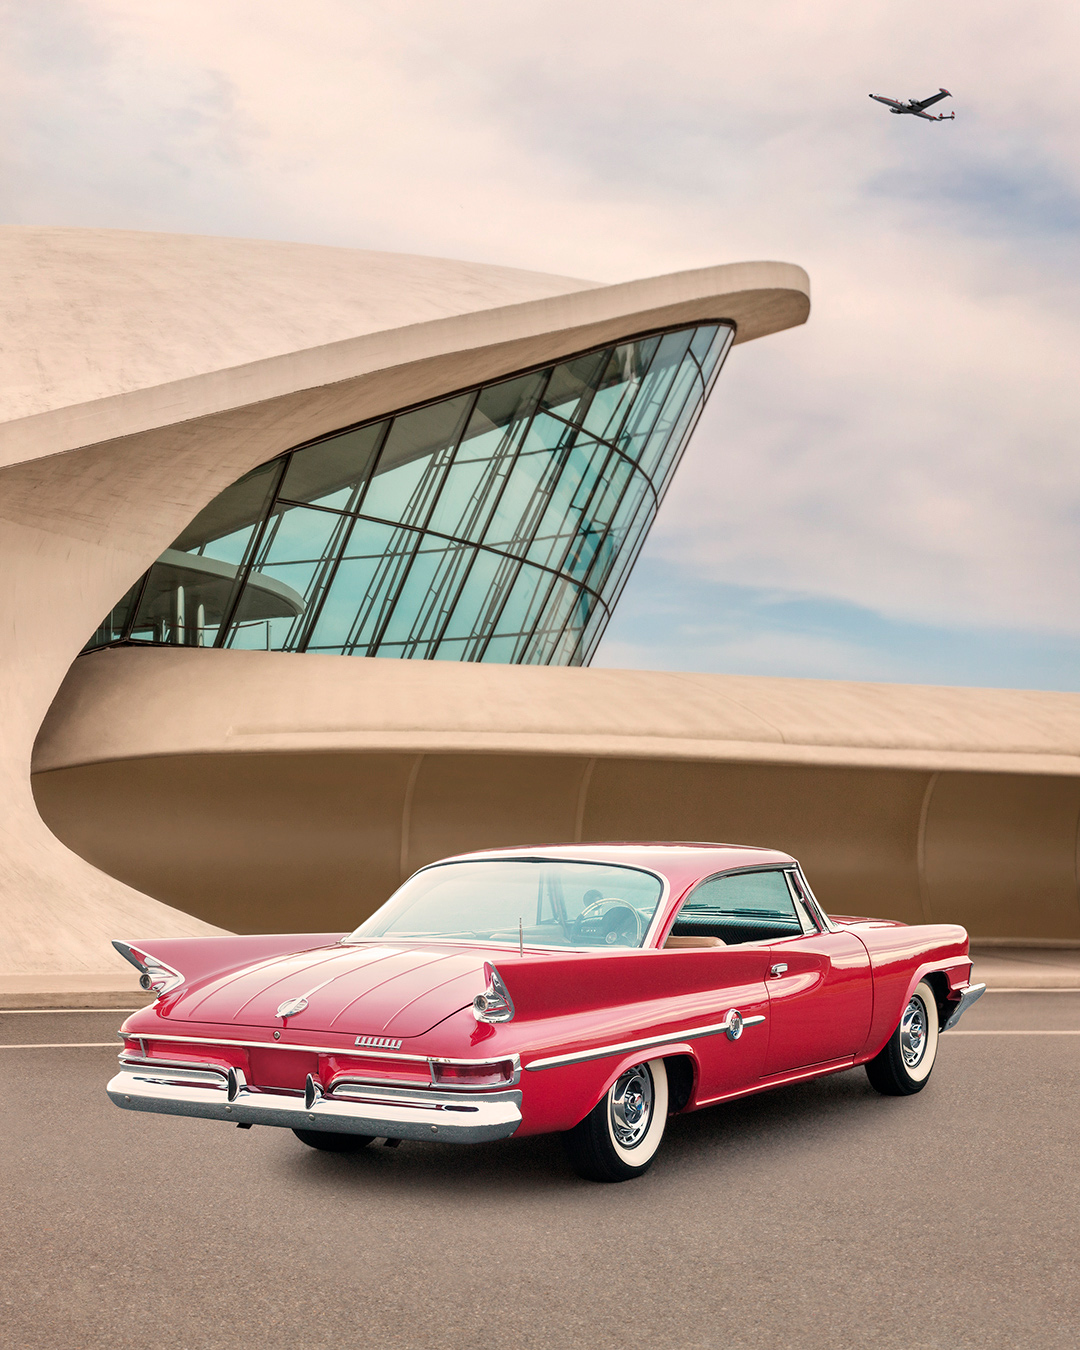 LeMay - 1961 Chrysler 300 G